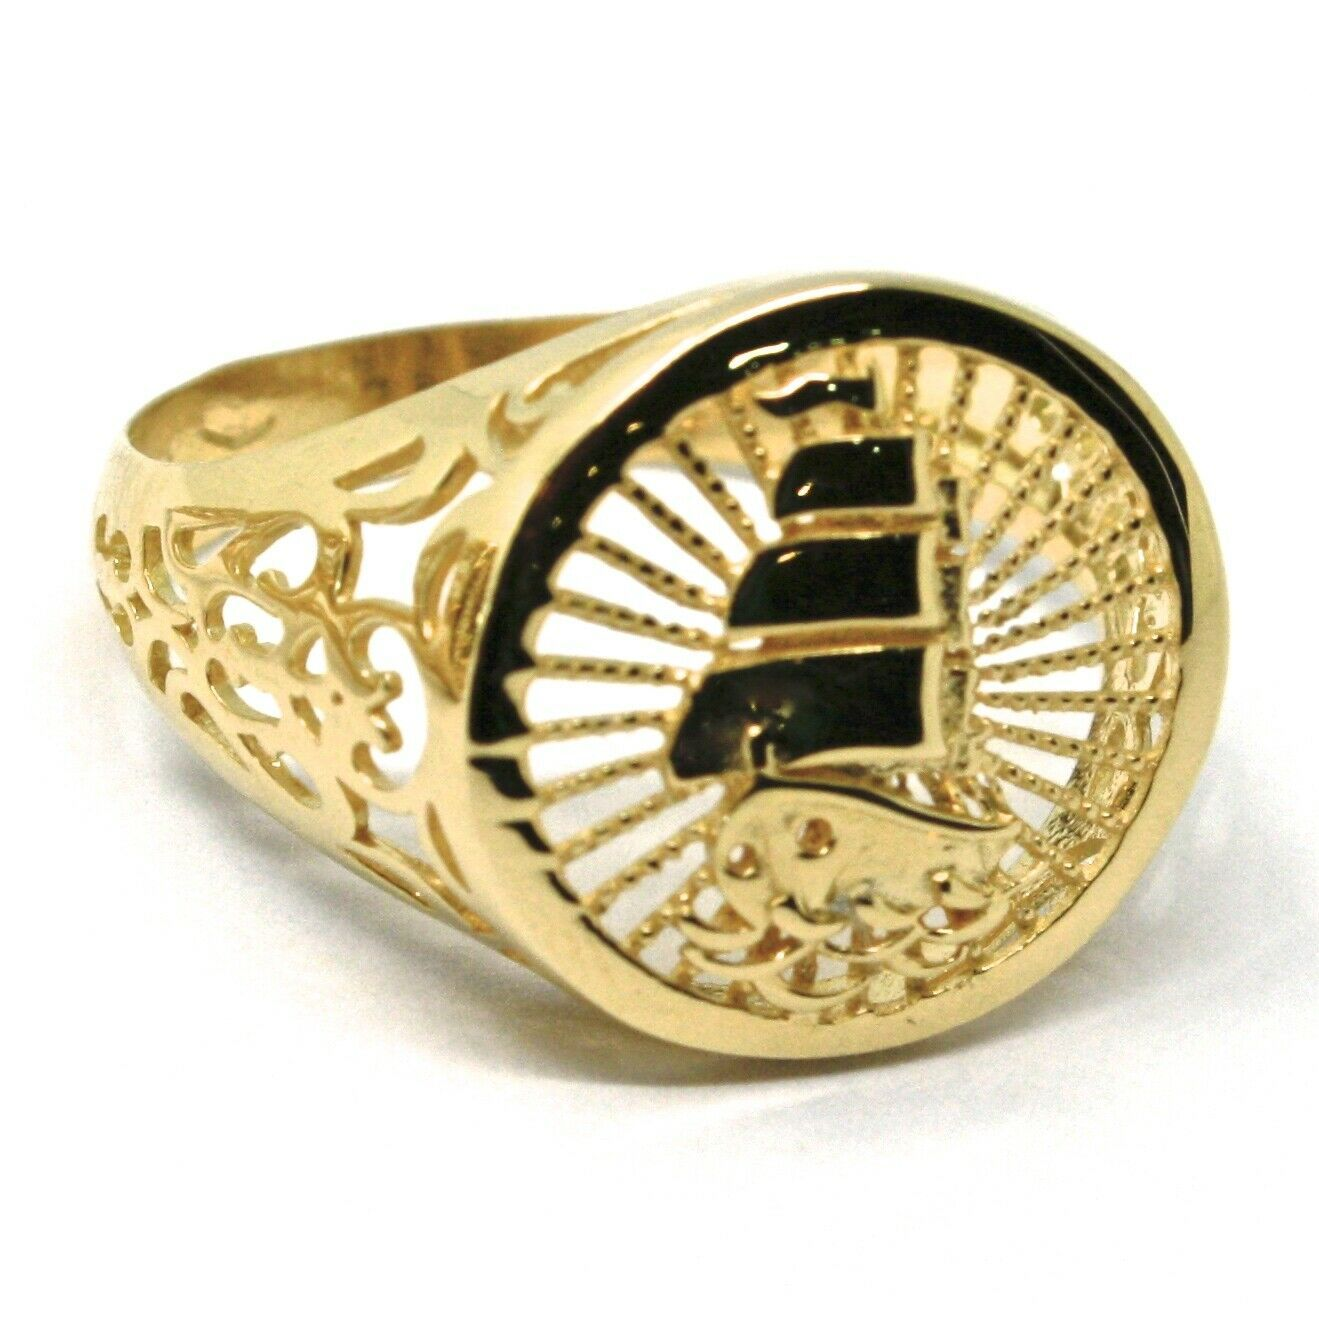 18K YELLOW GOLD BAND MAN RING, SAILING CLIPPER SHIP FINELY WORKED, RAYS, DISC